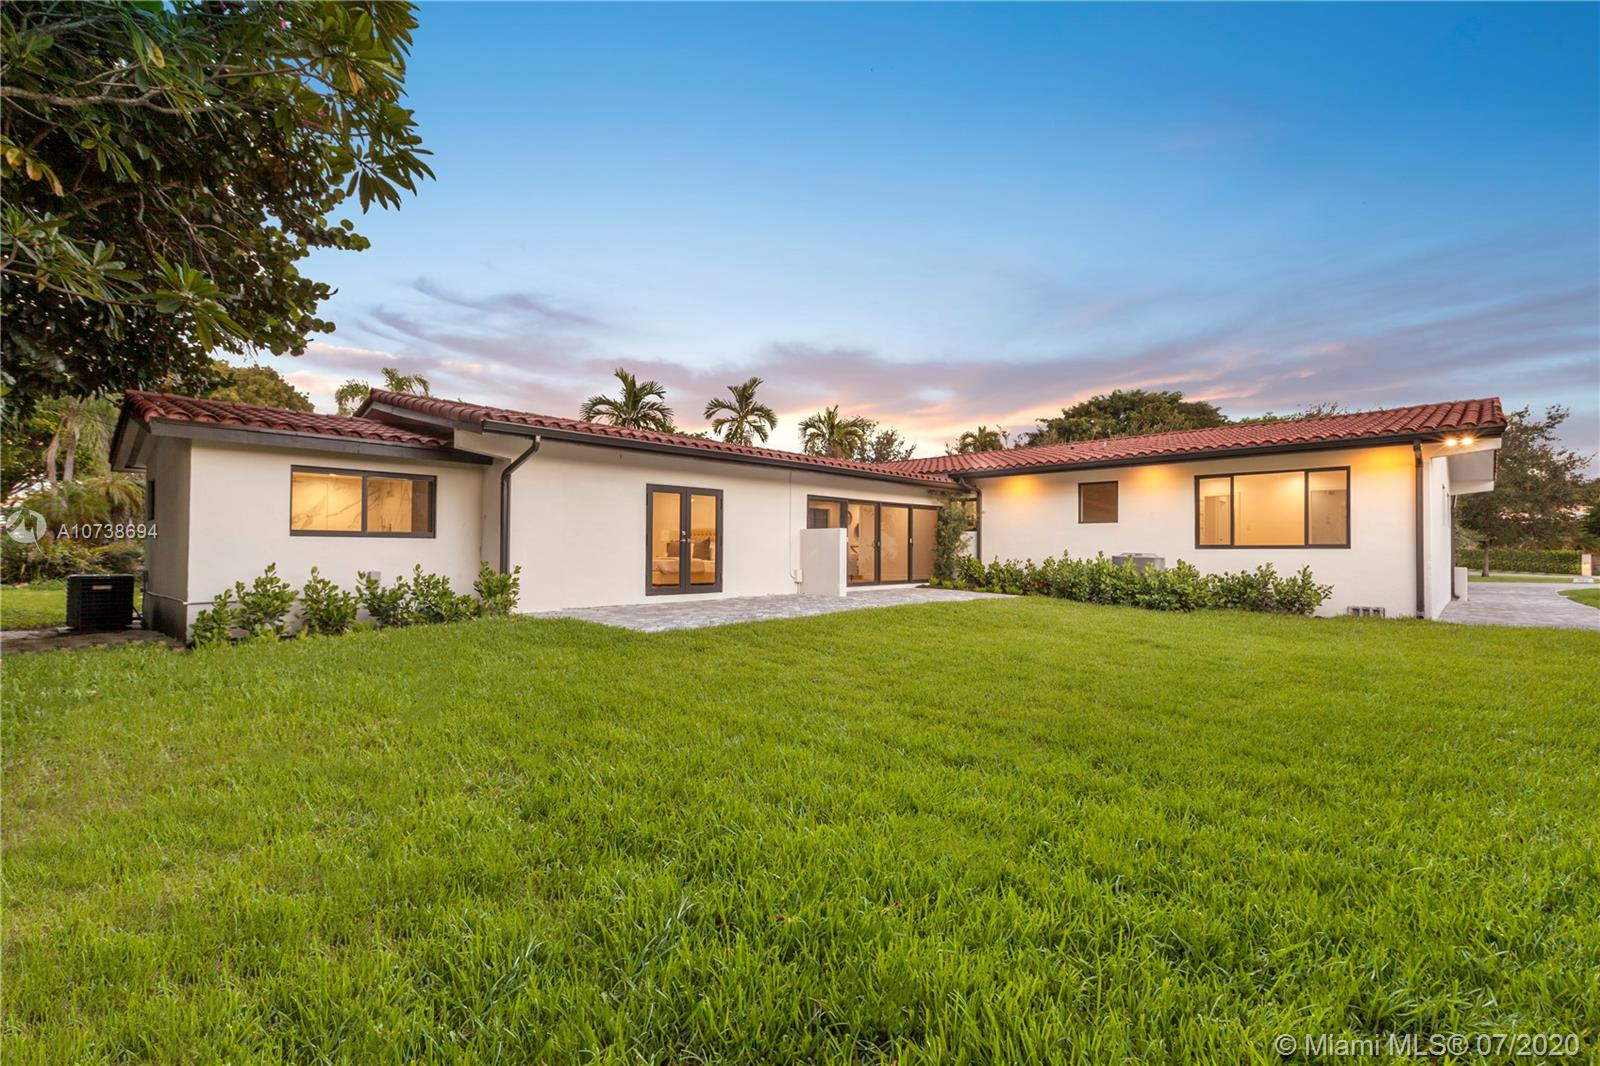 2834 De Soto Blvd, Coral Gables, Florida 33134, 4 Bedrooms Bedrooms, ,3 BathroomsBathrooms,Residential,For Sale,2834 De Soto Blvd,A10738694